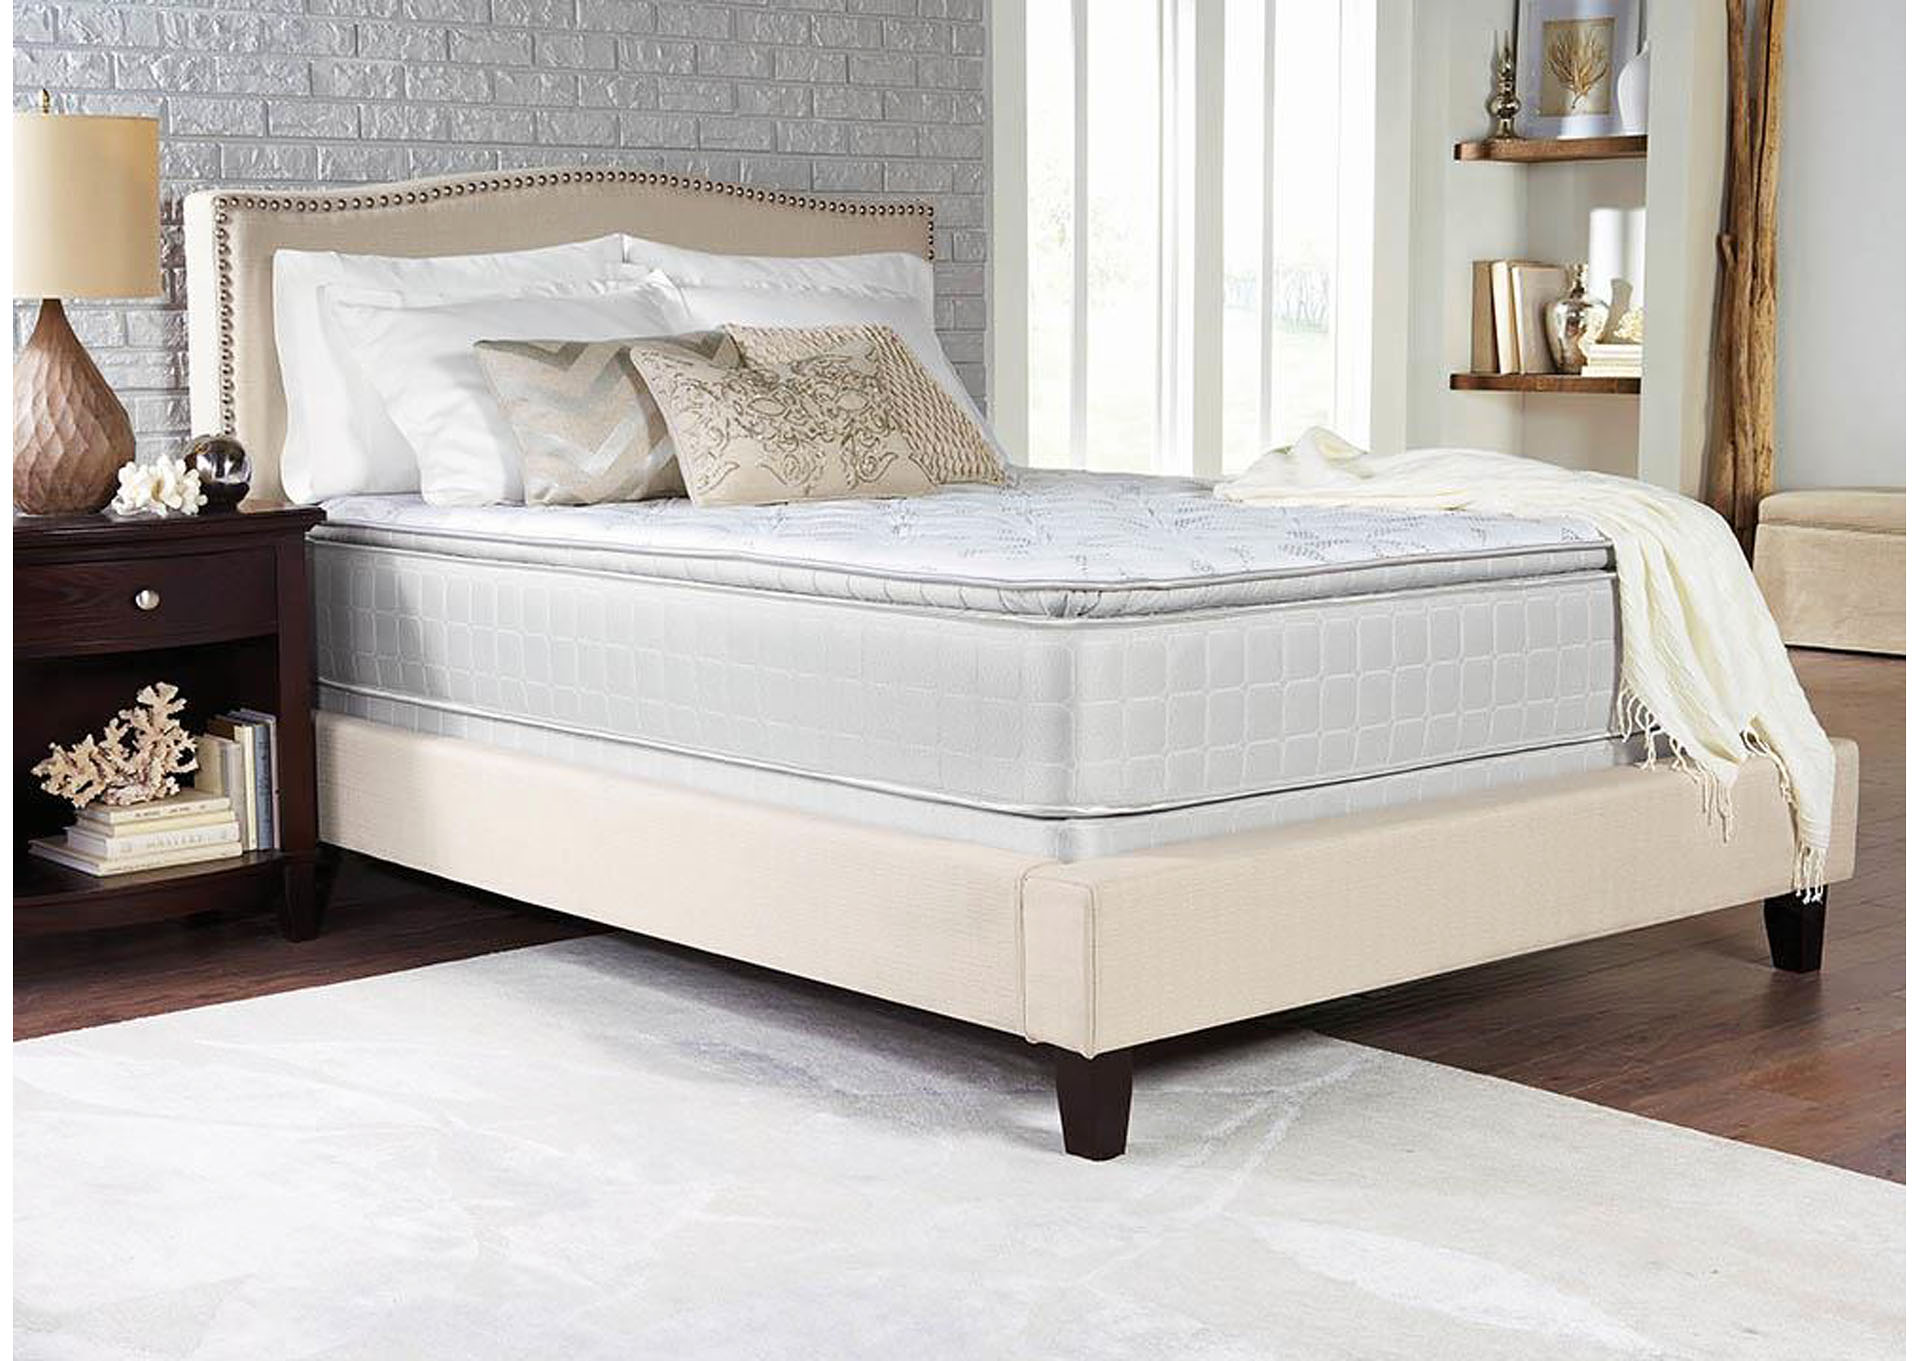 Marbella Pillow Top Queen Mattress,Coaster Furniture